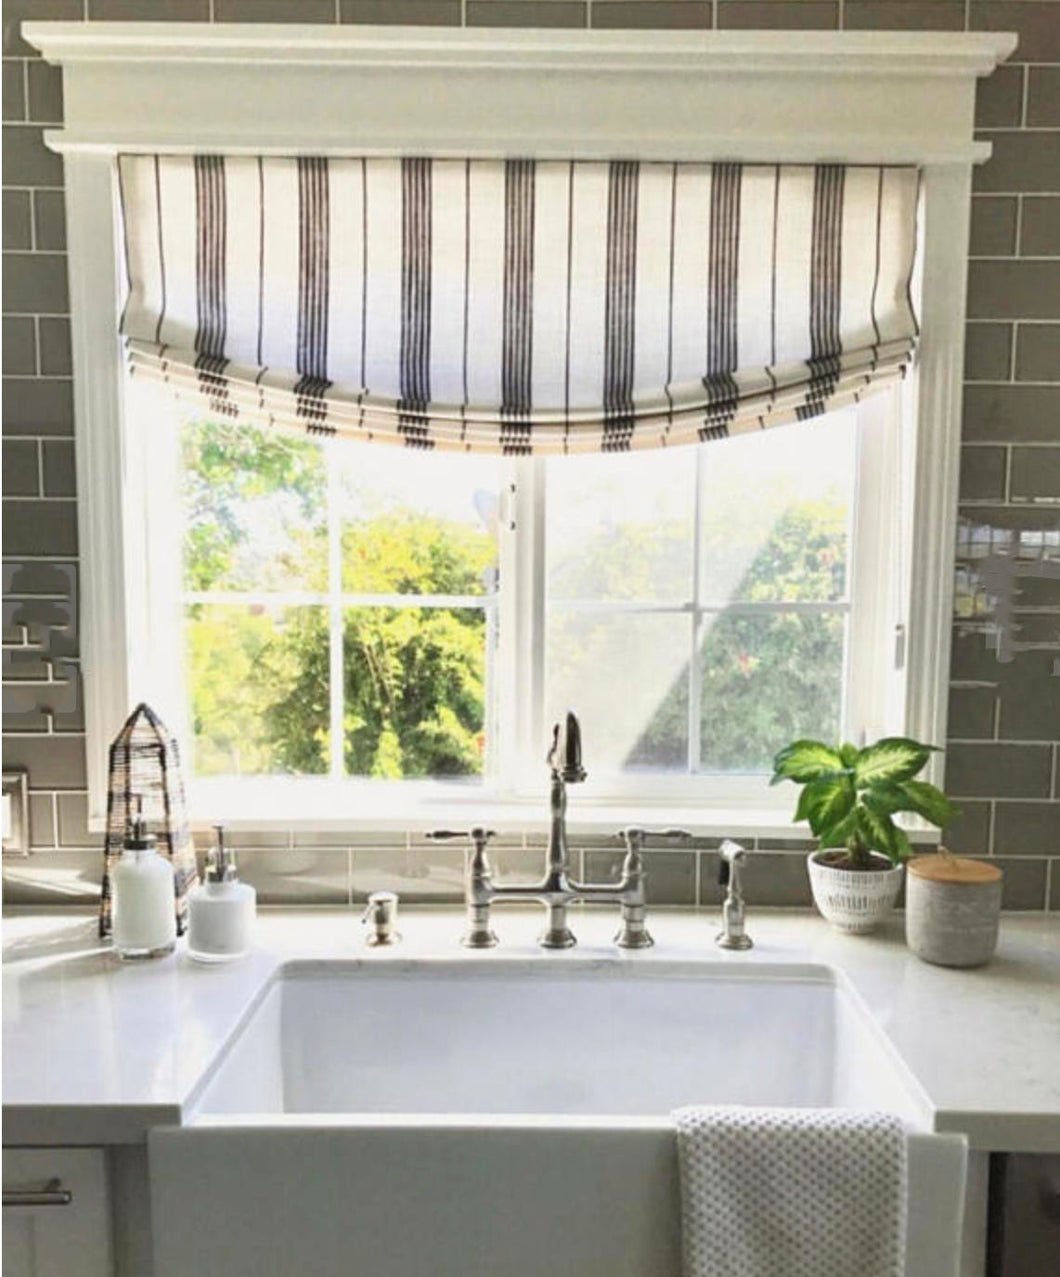 MODERN FARMHOUSe Roman Shades CUSTOM size striped roman shades kitchen window shades black white roman shade stripes ticking window shade